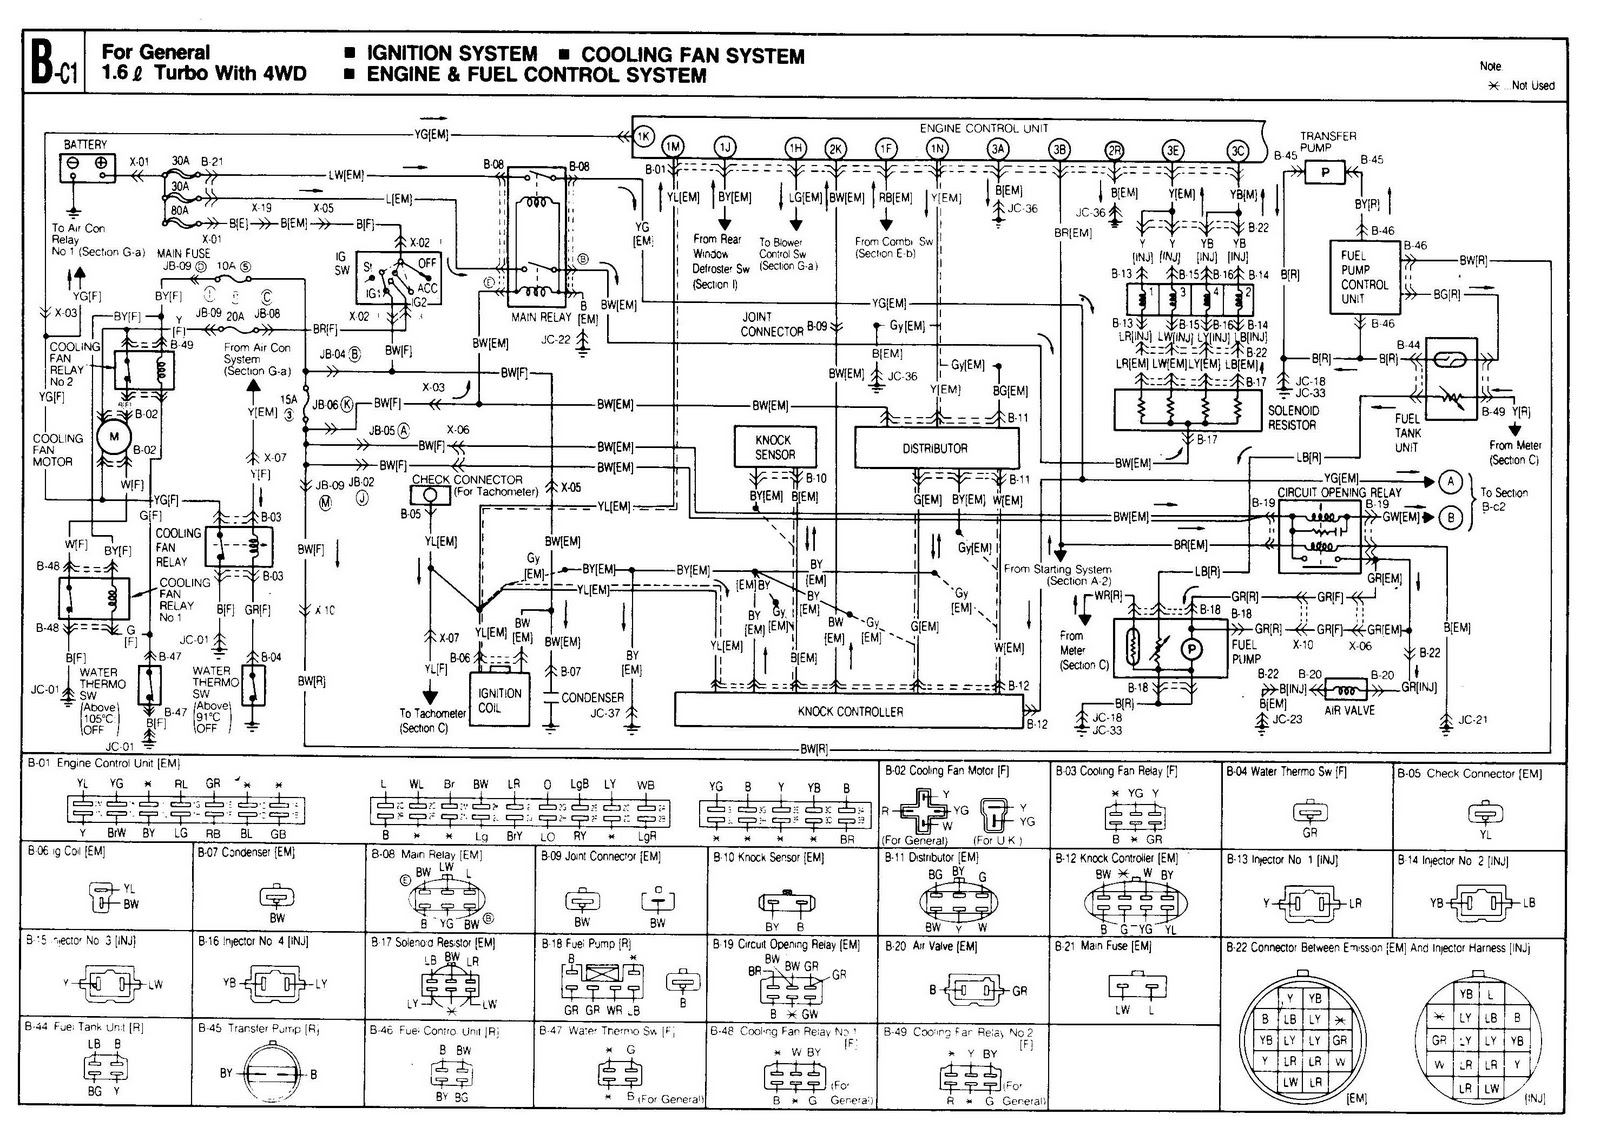 Mazda Familia Wiring Diagram | #1 Wiring Diagram Source on